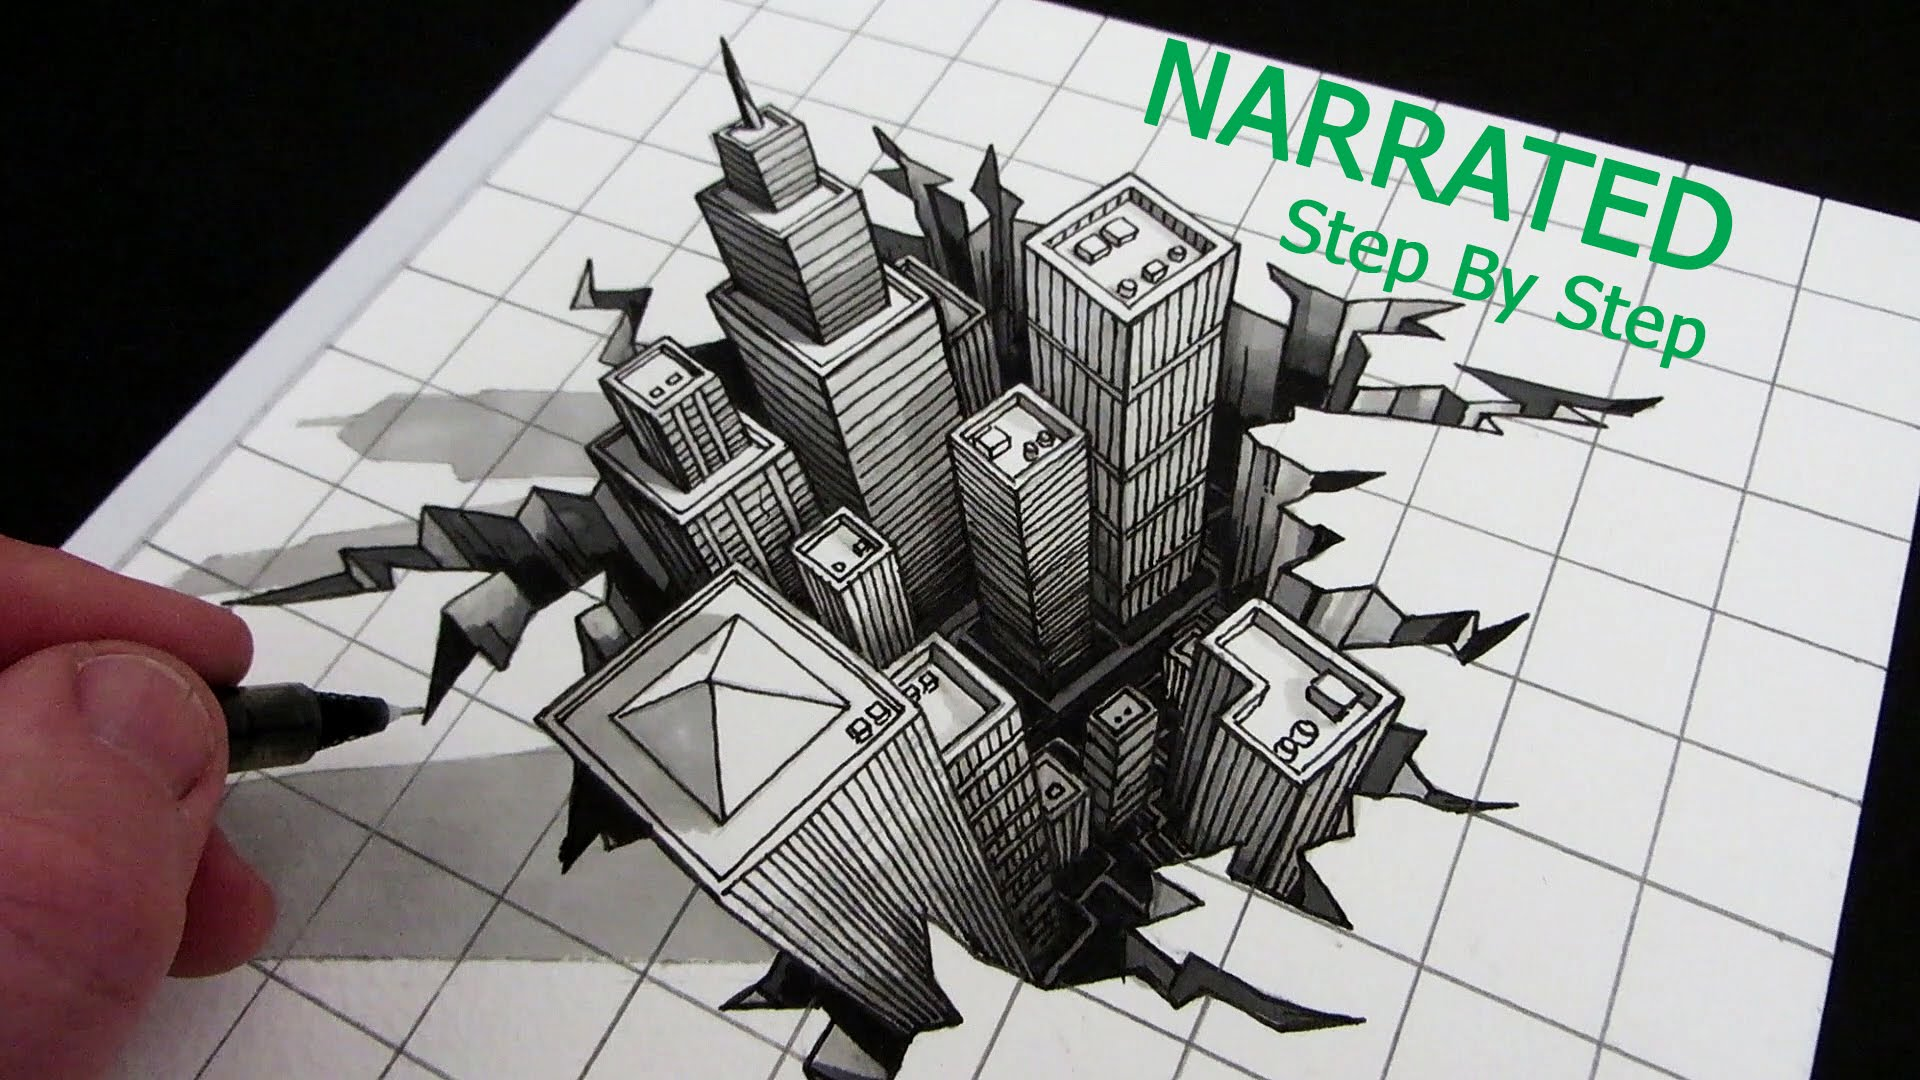 Drawn optical illusion graphic Step 3D Narrated Draw Step